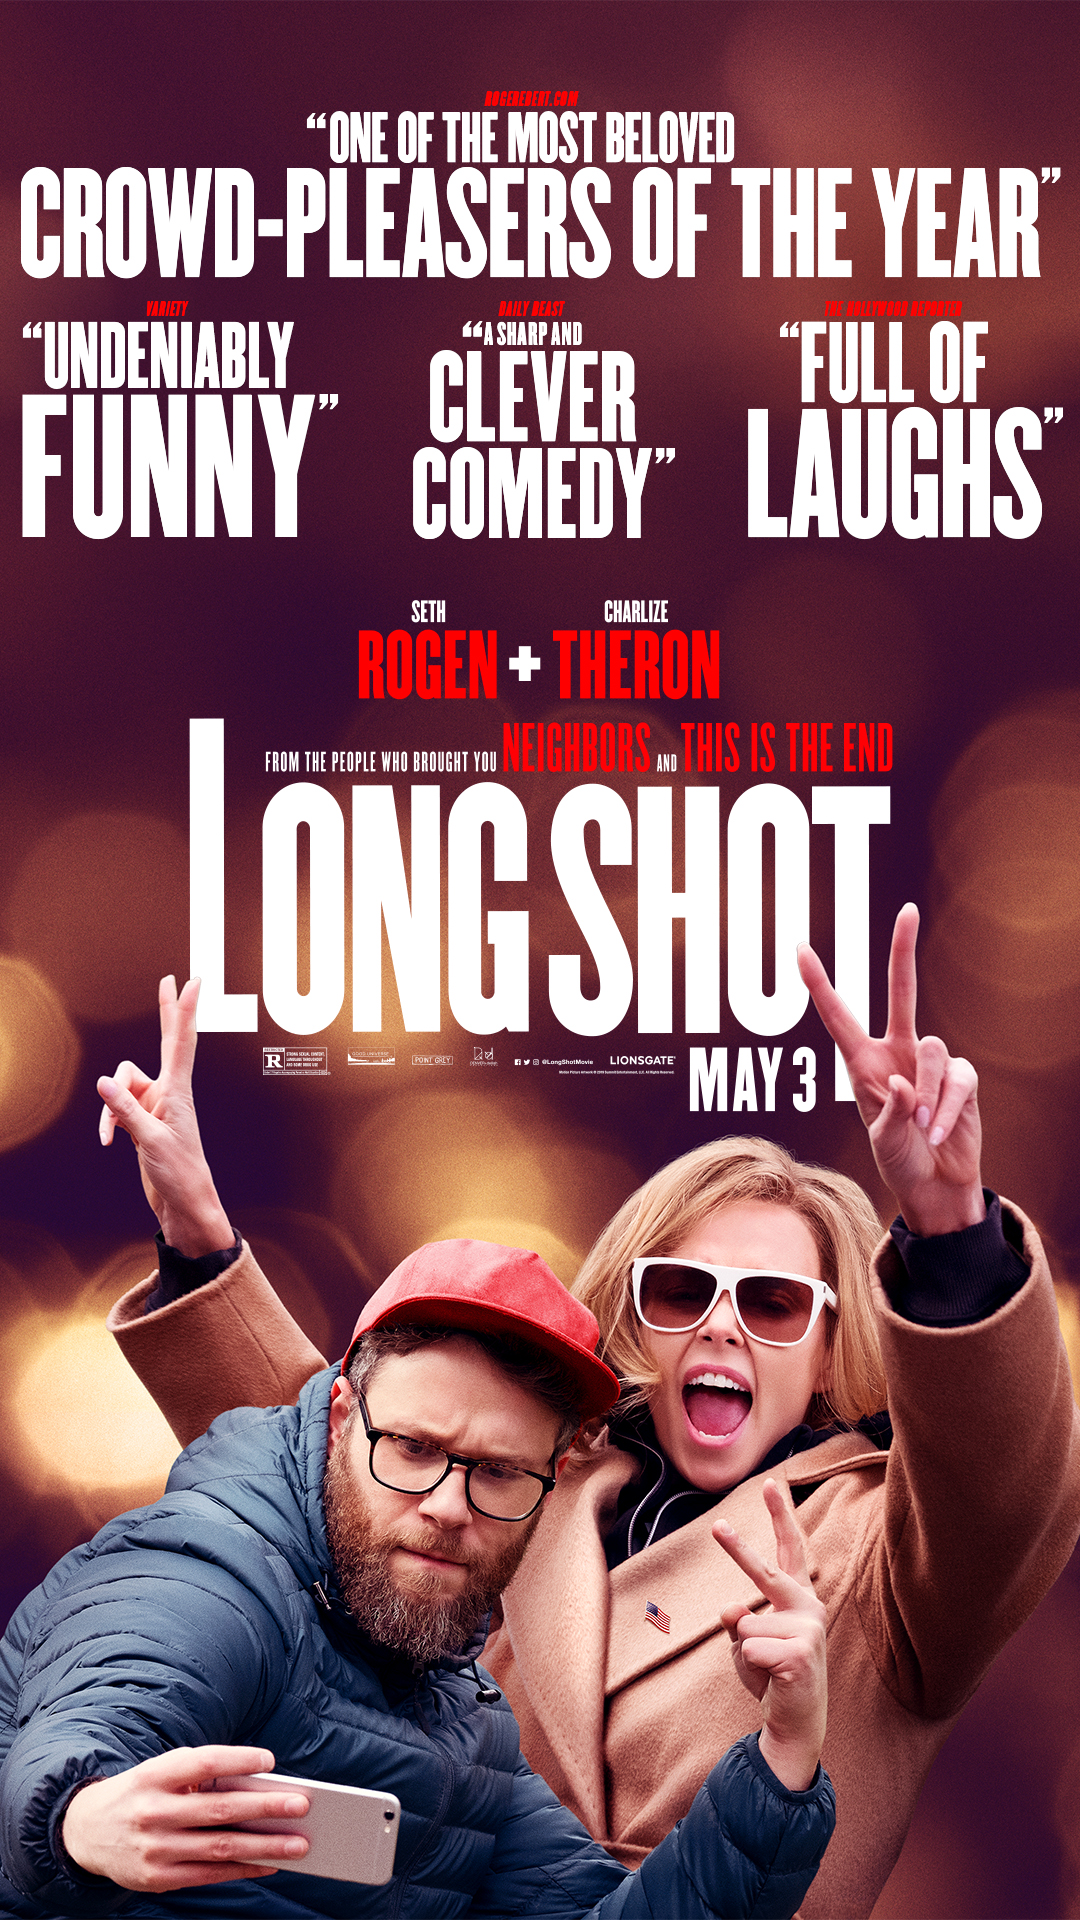 Long Shot (2019) - Directed by: Jonathan LevineStarring: Charlize Theron, Seth Rogen, Bob Odenkirk, Alexander Skarsgard, Randall Park, Andy Serkis, O'Shea Jackson Jr., June Diane Raphael, Ravi PatelRated: R for Strong Sexual Content, Language Throughout and Some Drug ContentRunning Time: 2 h 5 mTMM Score: 4 stars out of 5STRENGTHS: Themes, Writing, Acting, HumorWEAKNESSES: Pacing, Length